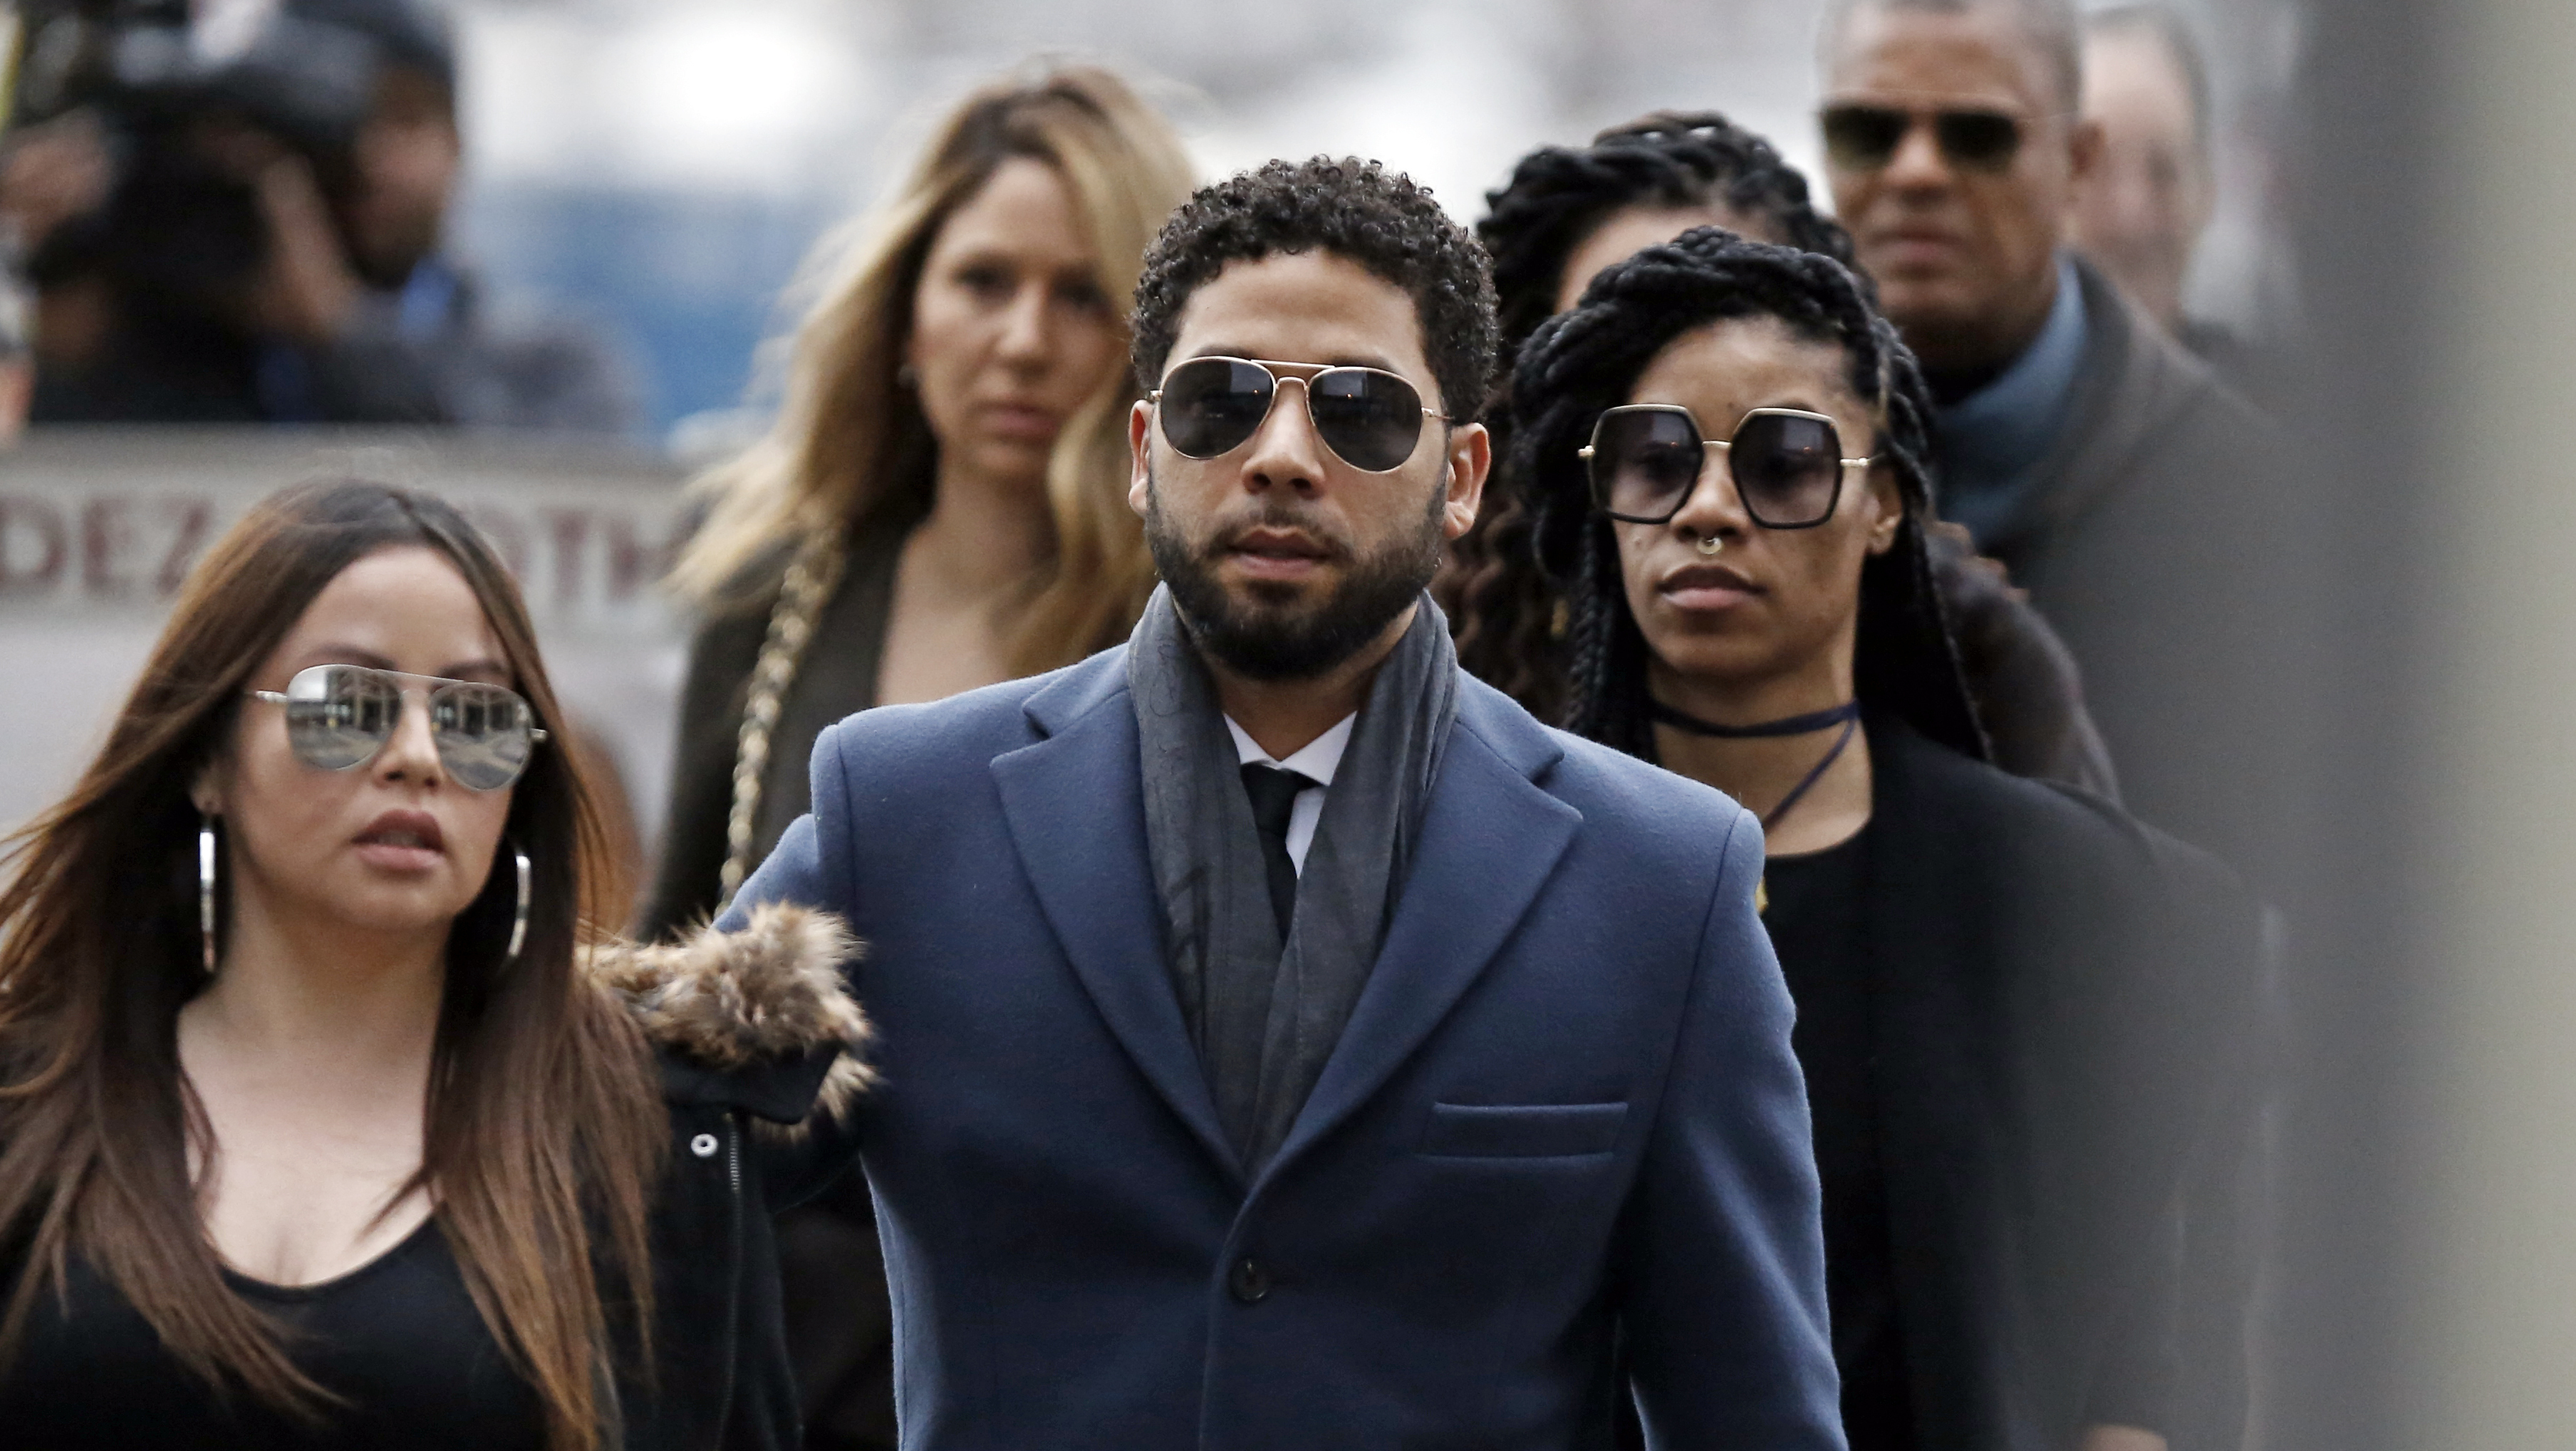 Chicago Police Roll Out Hundreds Of Pages Of Records In Jussie Smollett Case